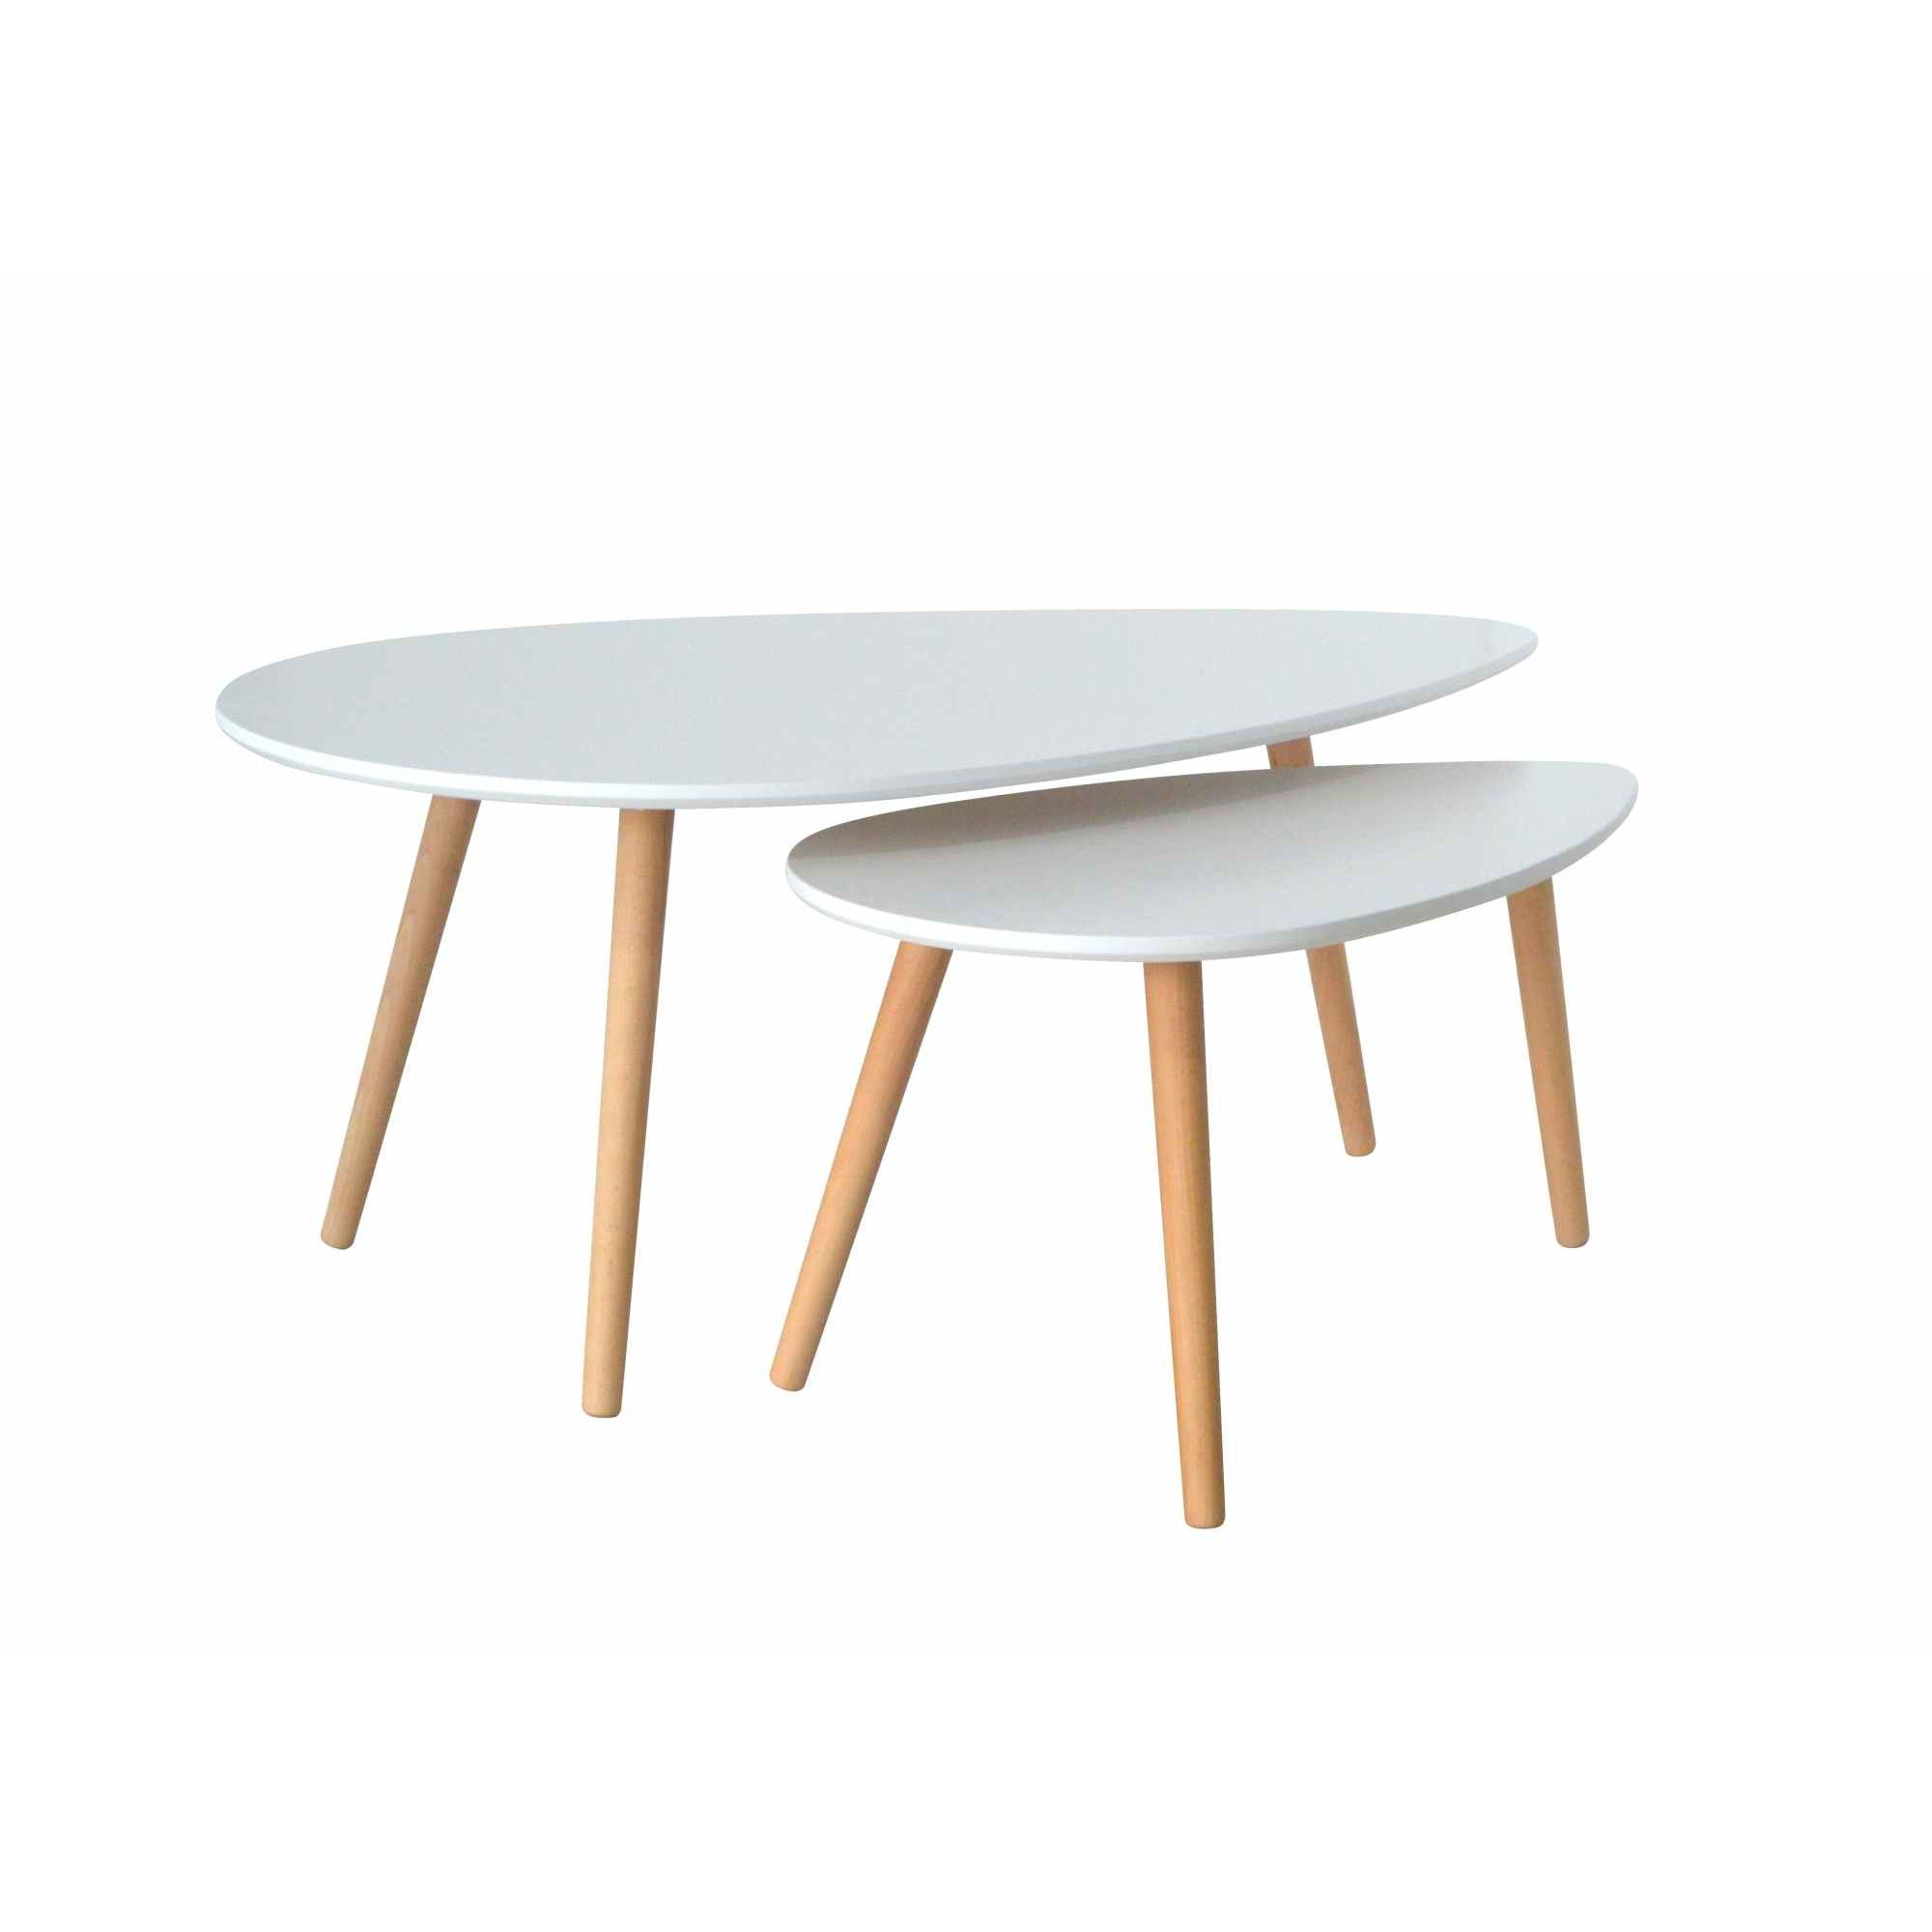 Deco in paris table basse scandinave blanc avesta avesta for Table basse scandinave salon